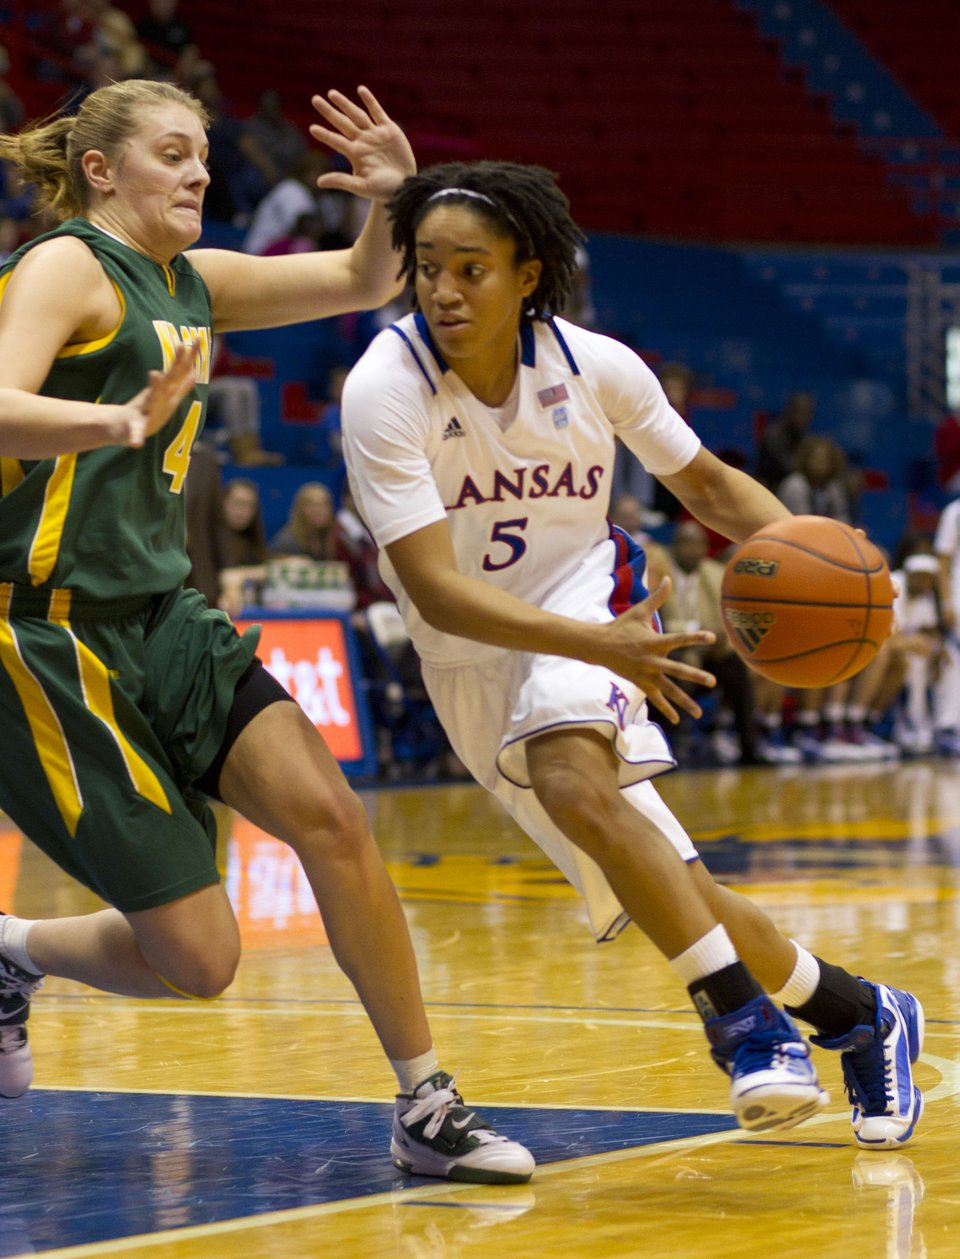 KU women's basketball vs. North Dakota State | KUsports.com